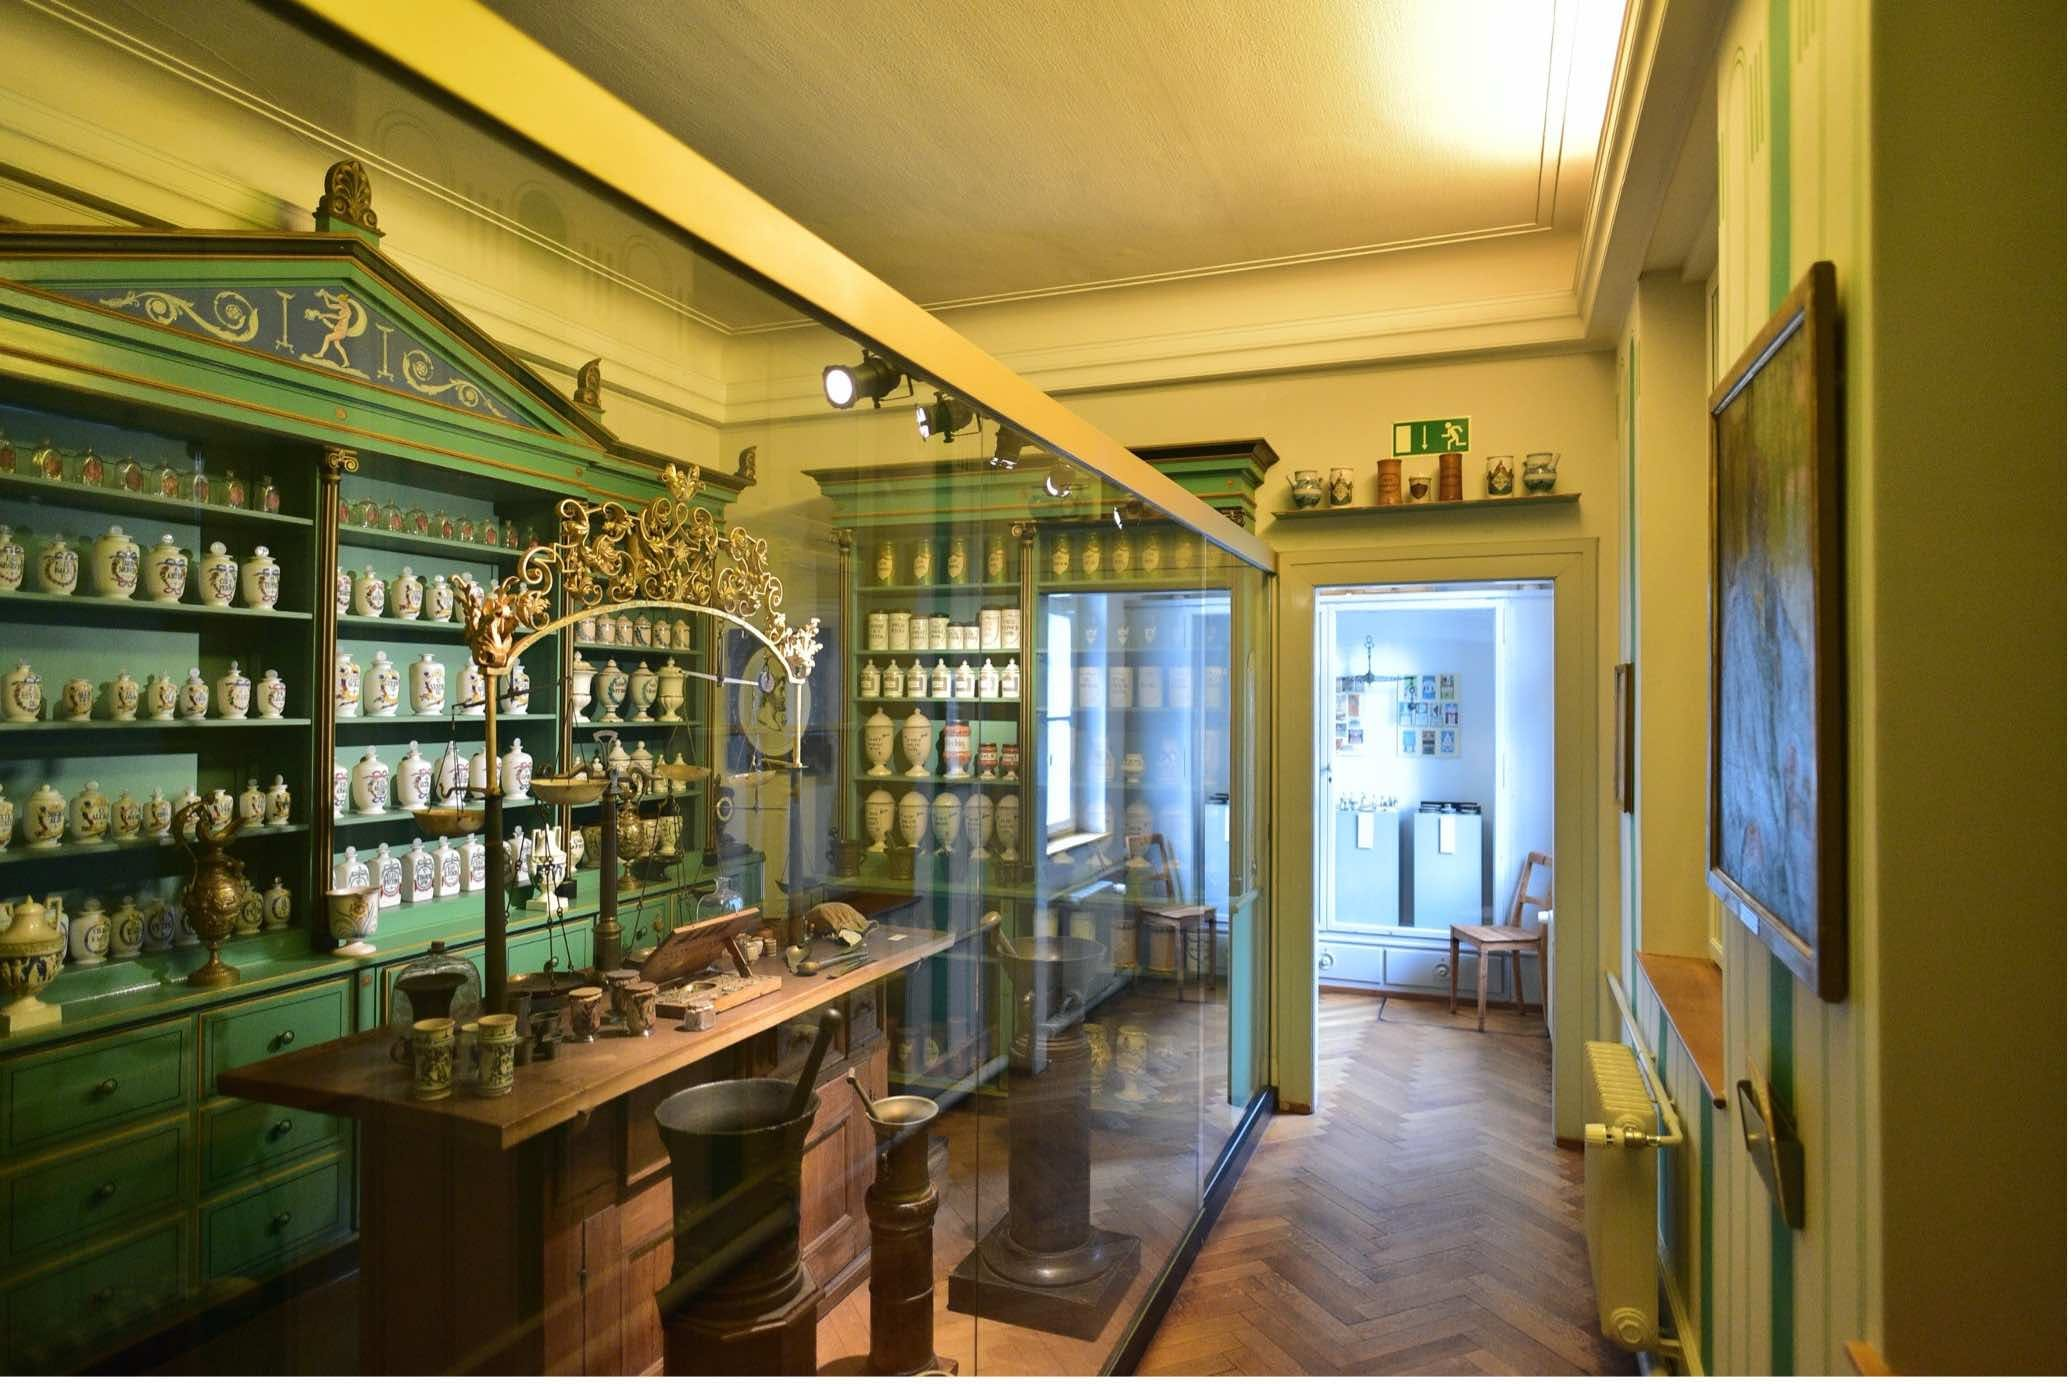 The Pharmacy Museum at the University of Basel.